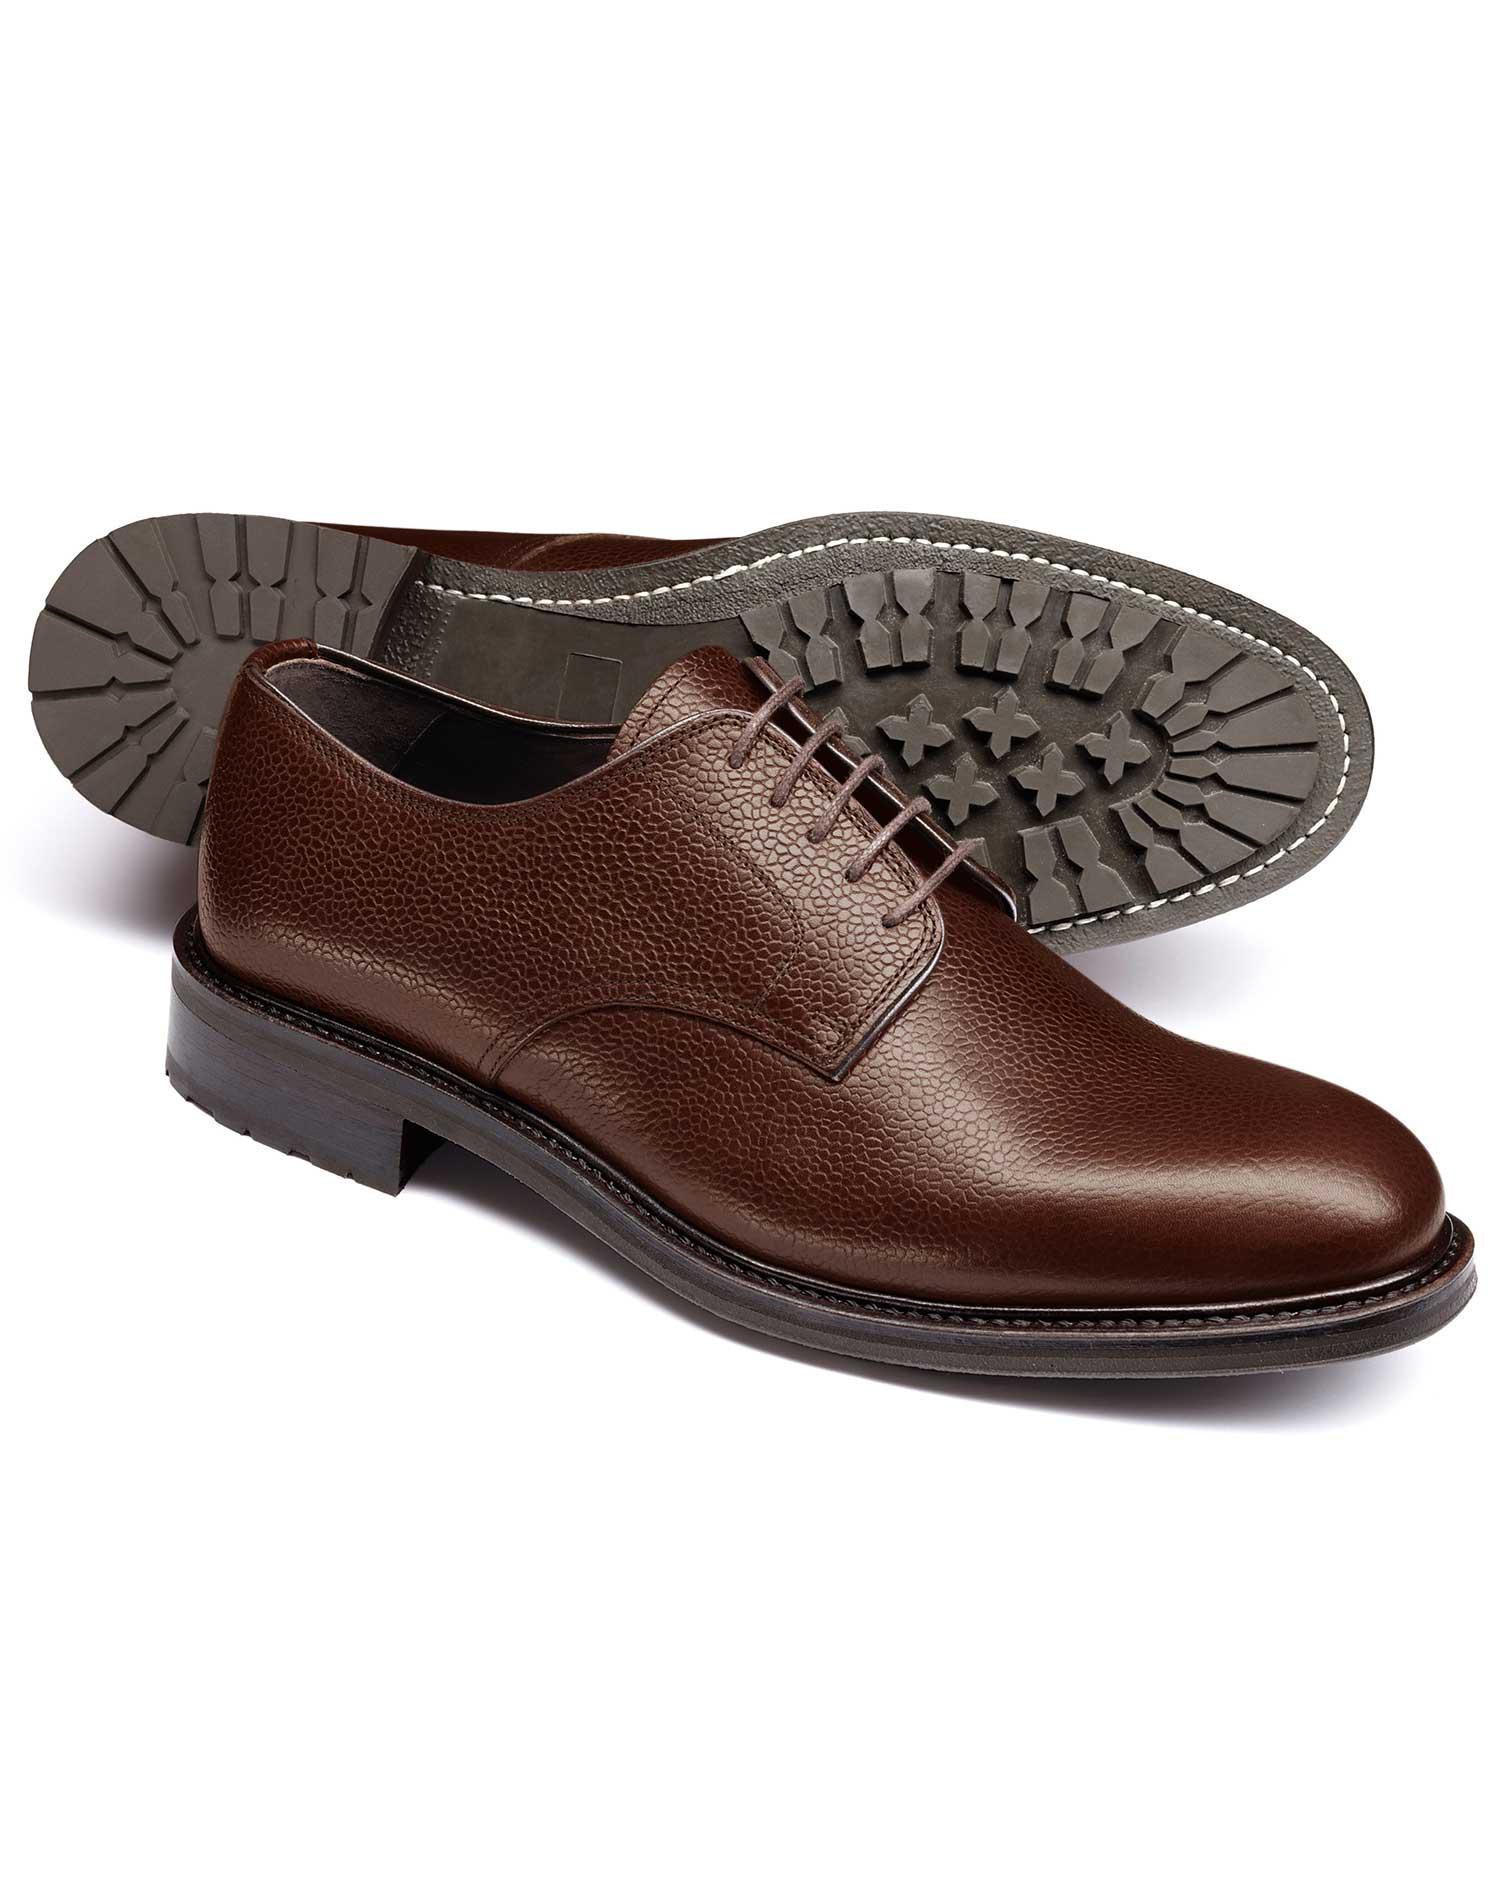 Brown Otterham Derby Shoes Size 12 R by Charles Tyrwhitt